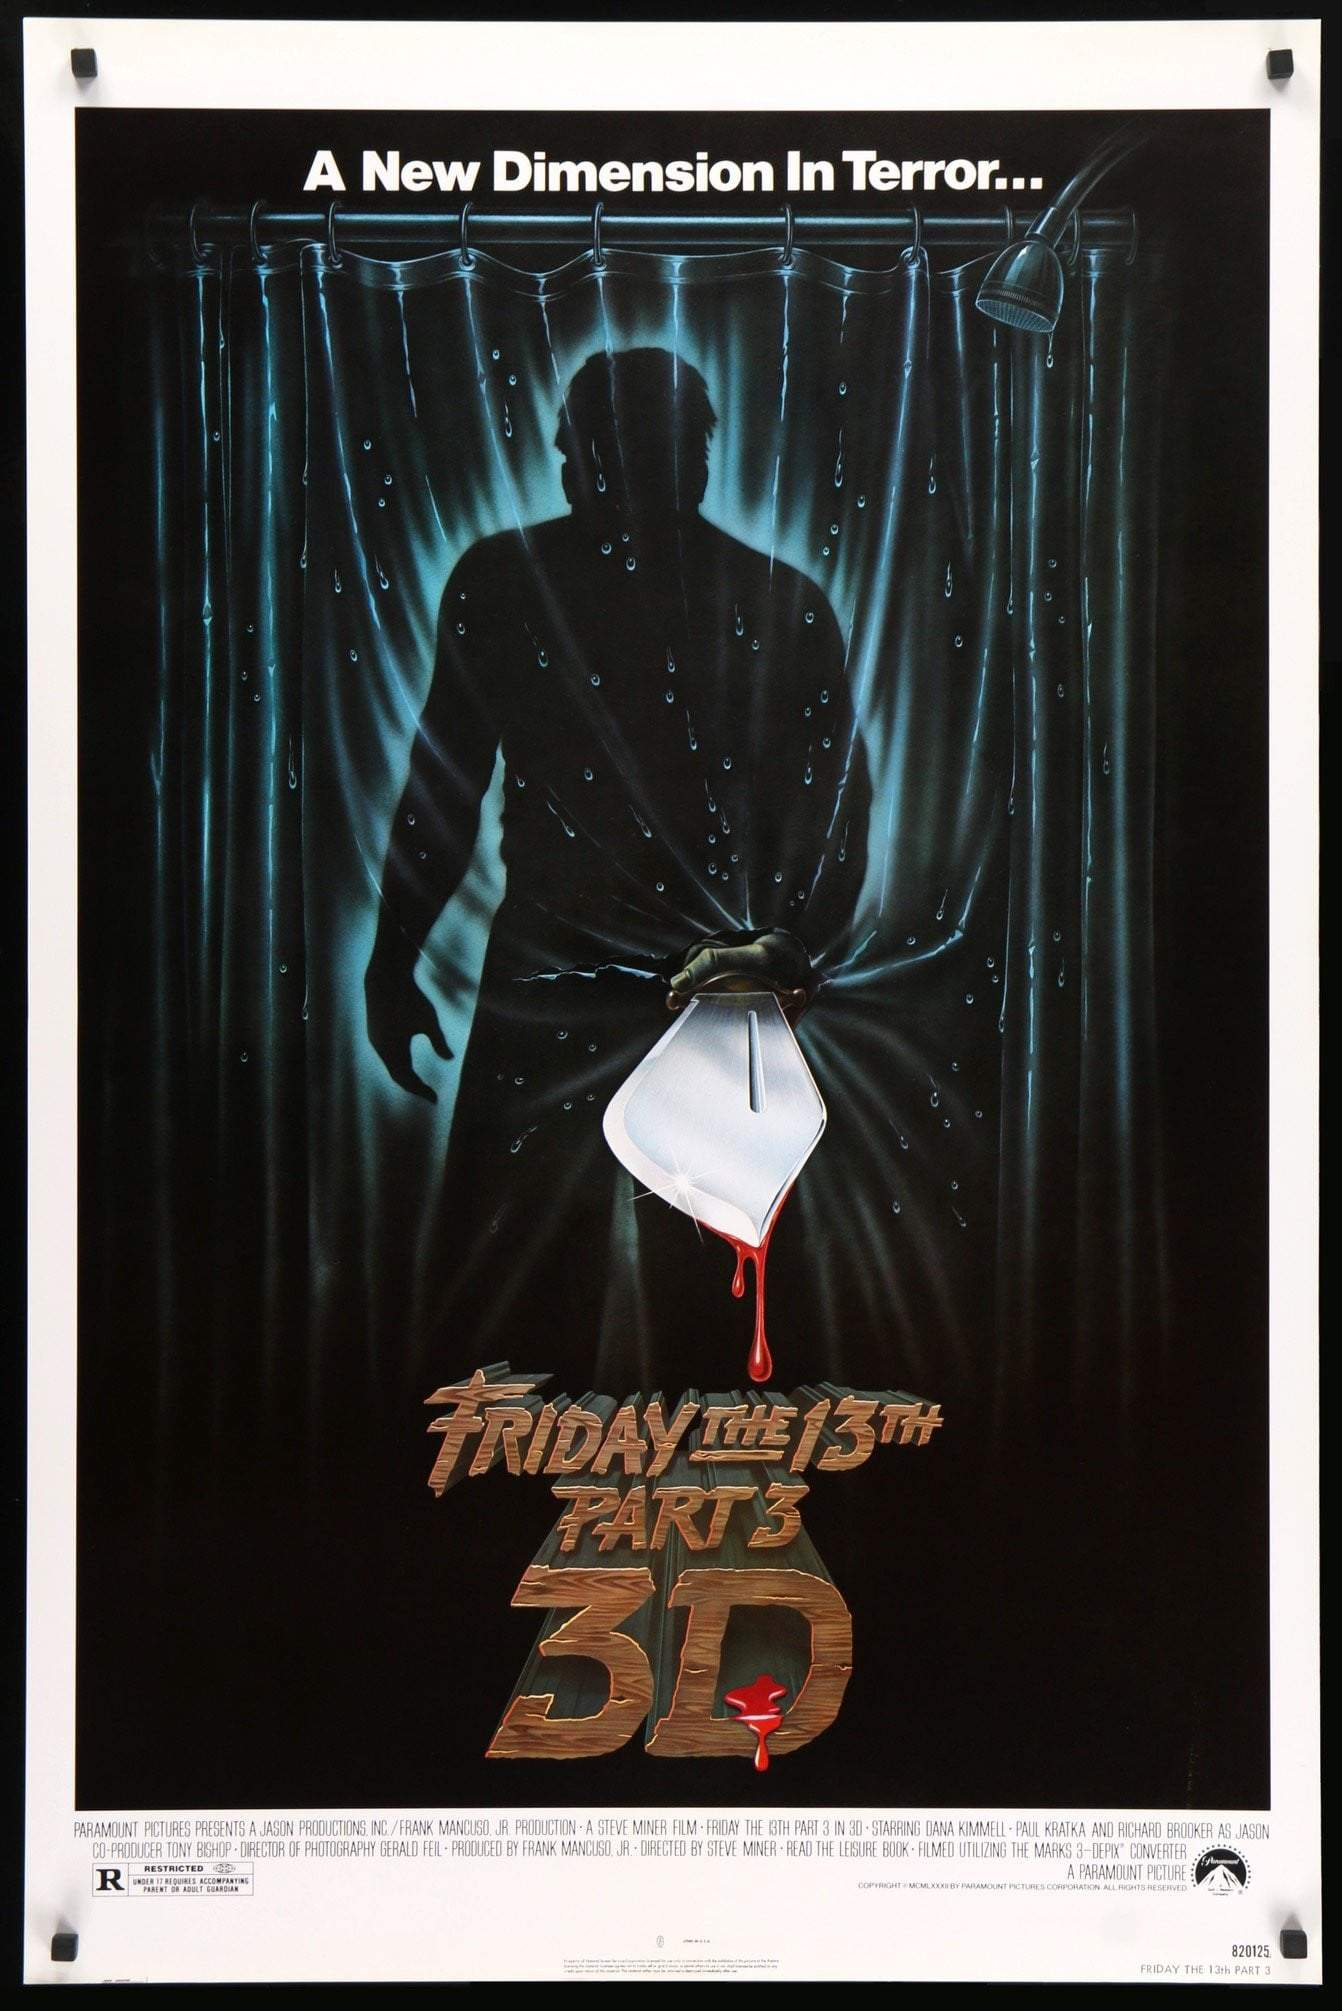 FRIDAY THE 13TH PART III in 3D (1982)  - PR